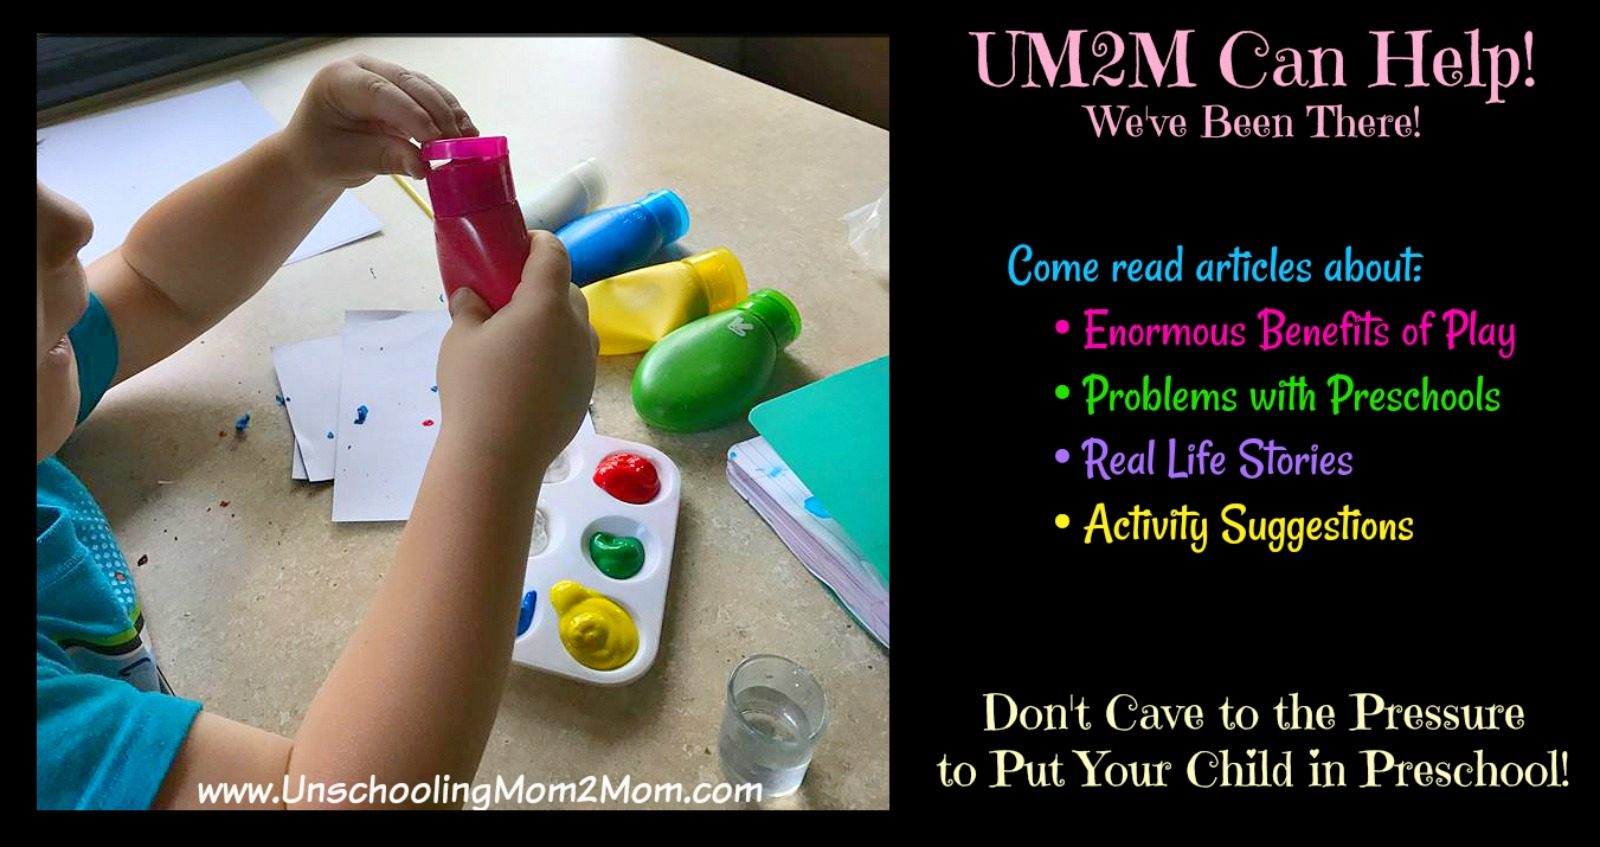 How Twisted Eearly Childhood Education >> Unschooling Pre Schoolers Unschooling Mom2mom